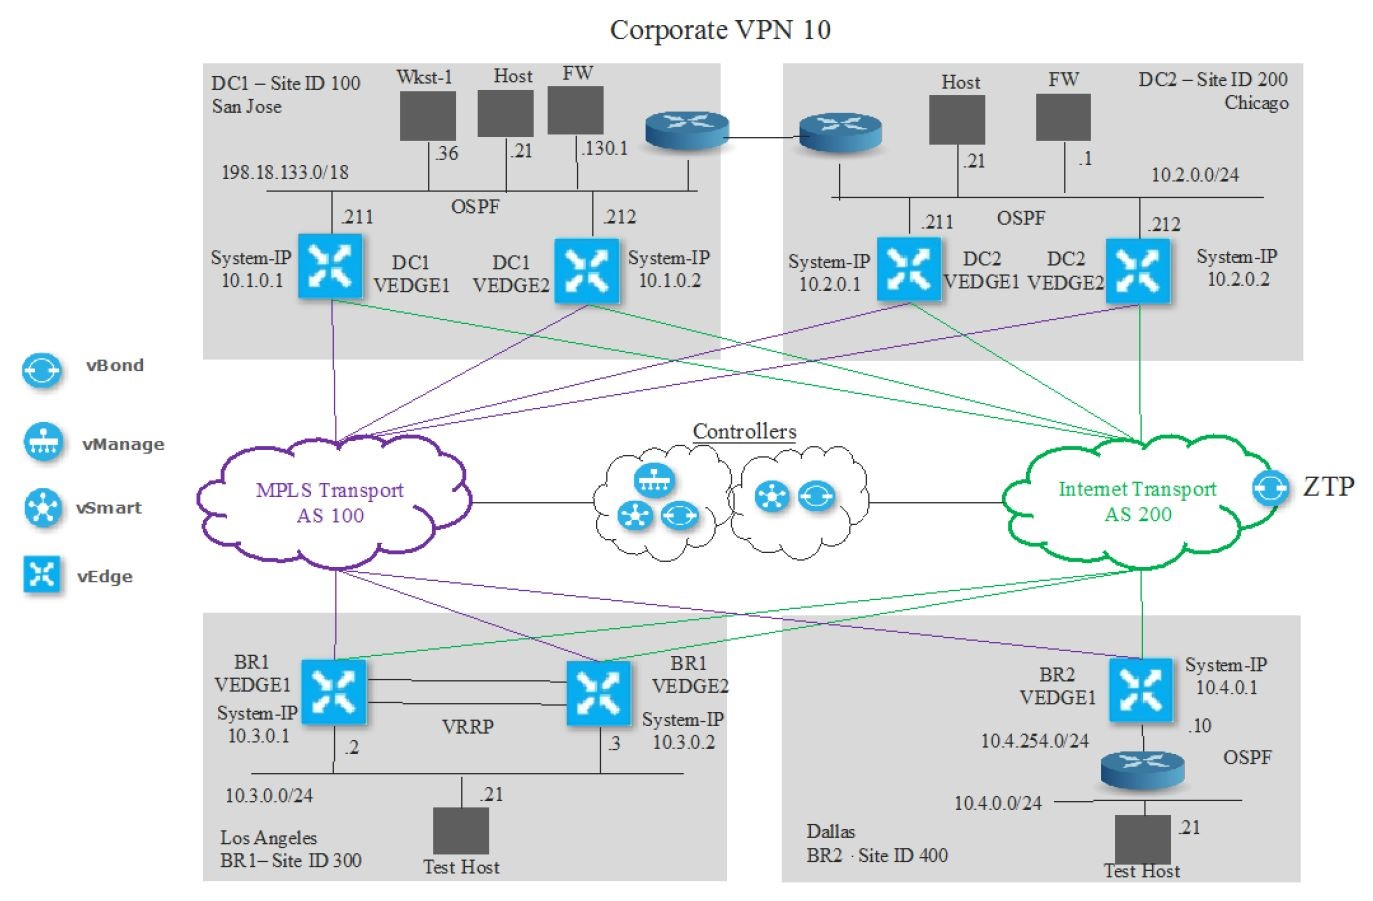 Getting Started with dCloud - Prelude to SD-WAN Deep Dive | Carpe DMVPN